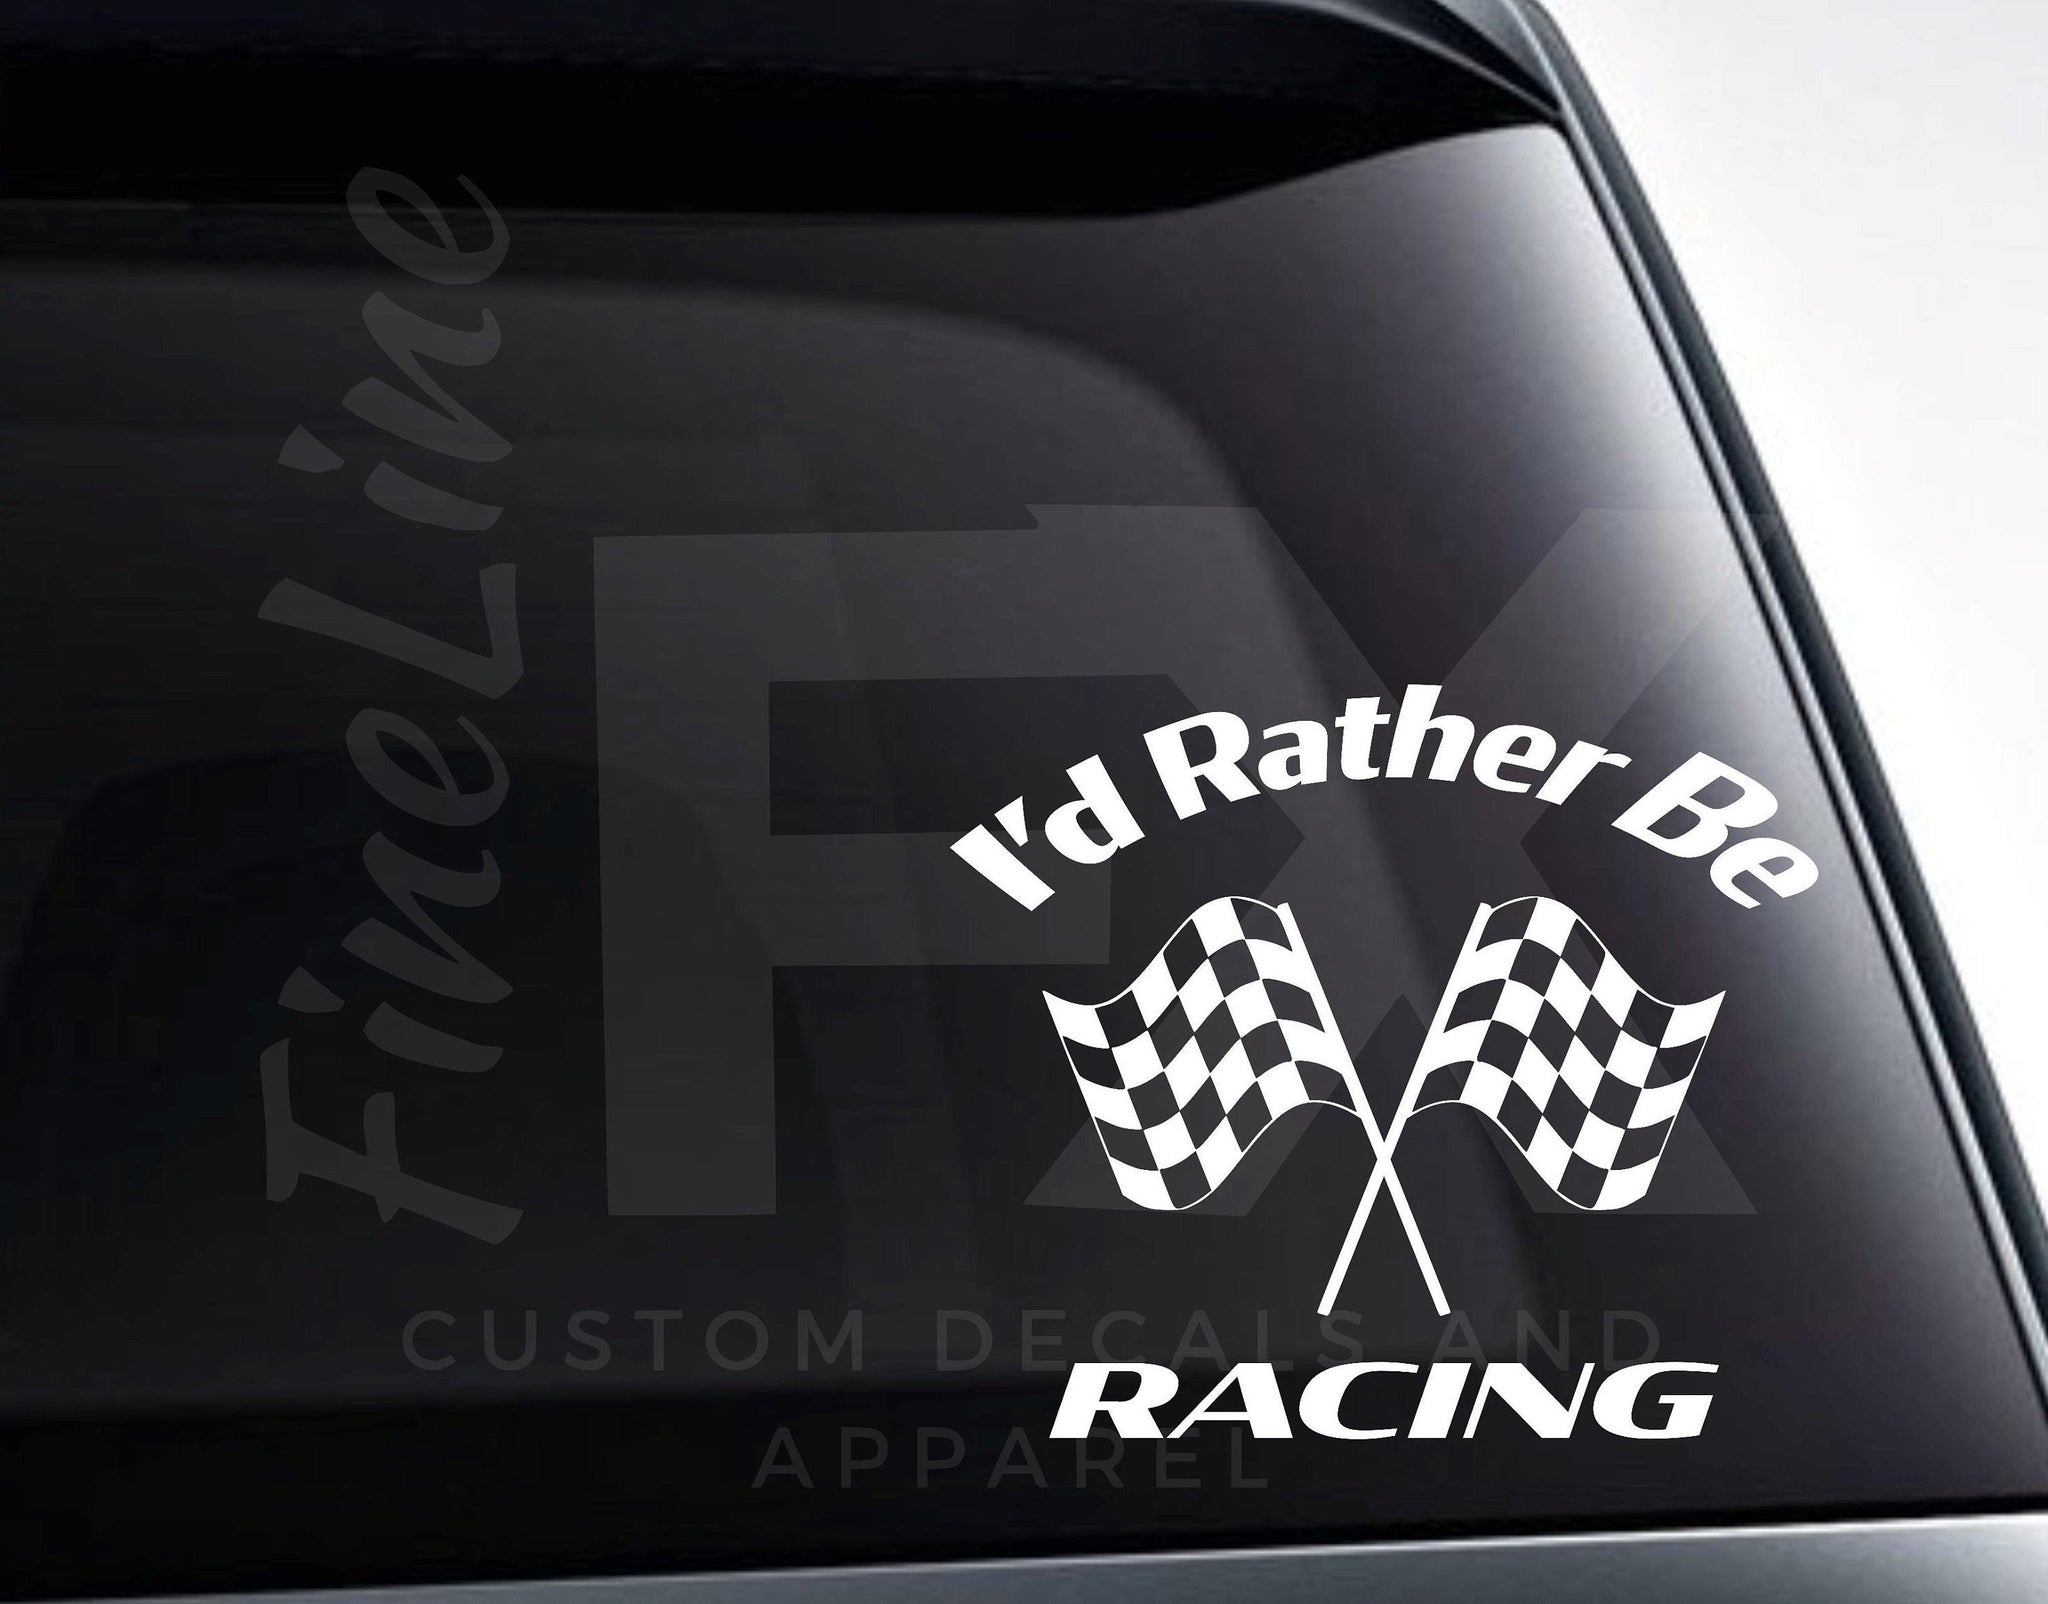 I'd Rather Be Racing Crossed Checkered Racing Flags Vinyl Decal Sticker